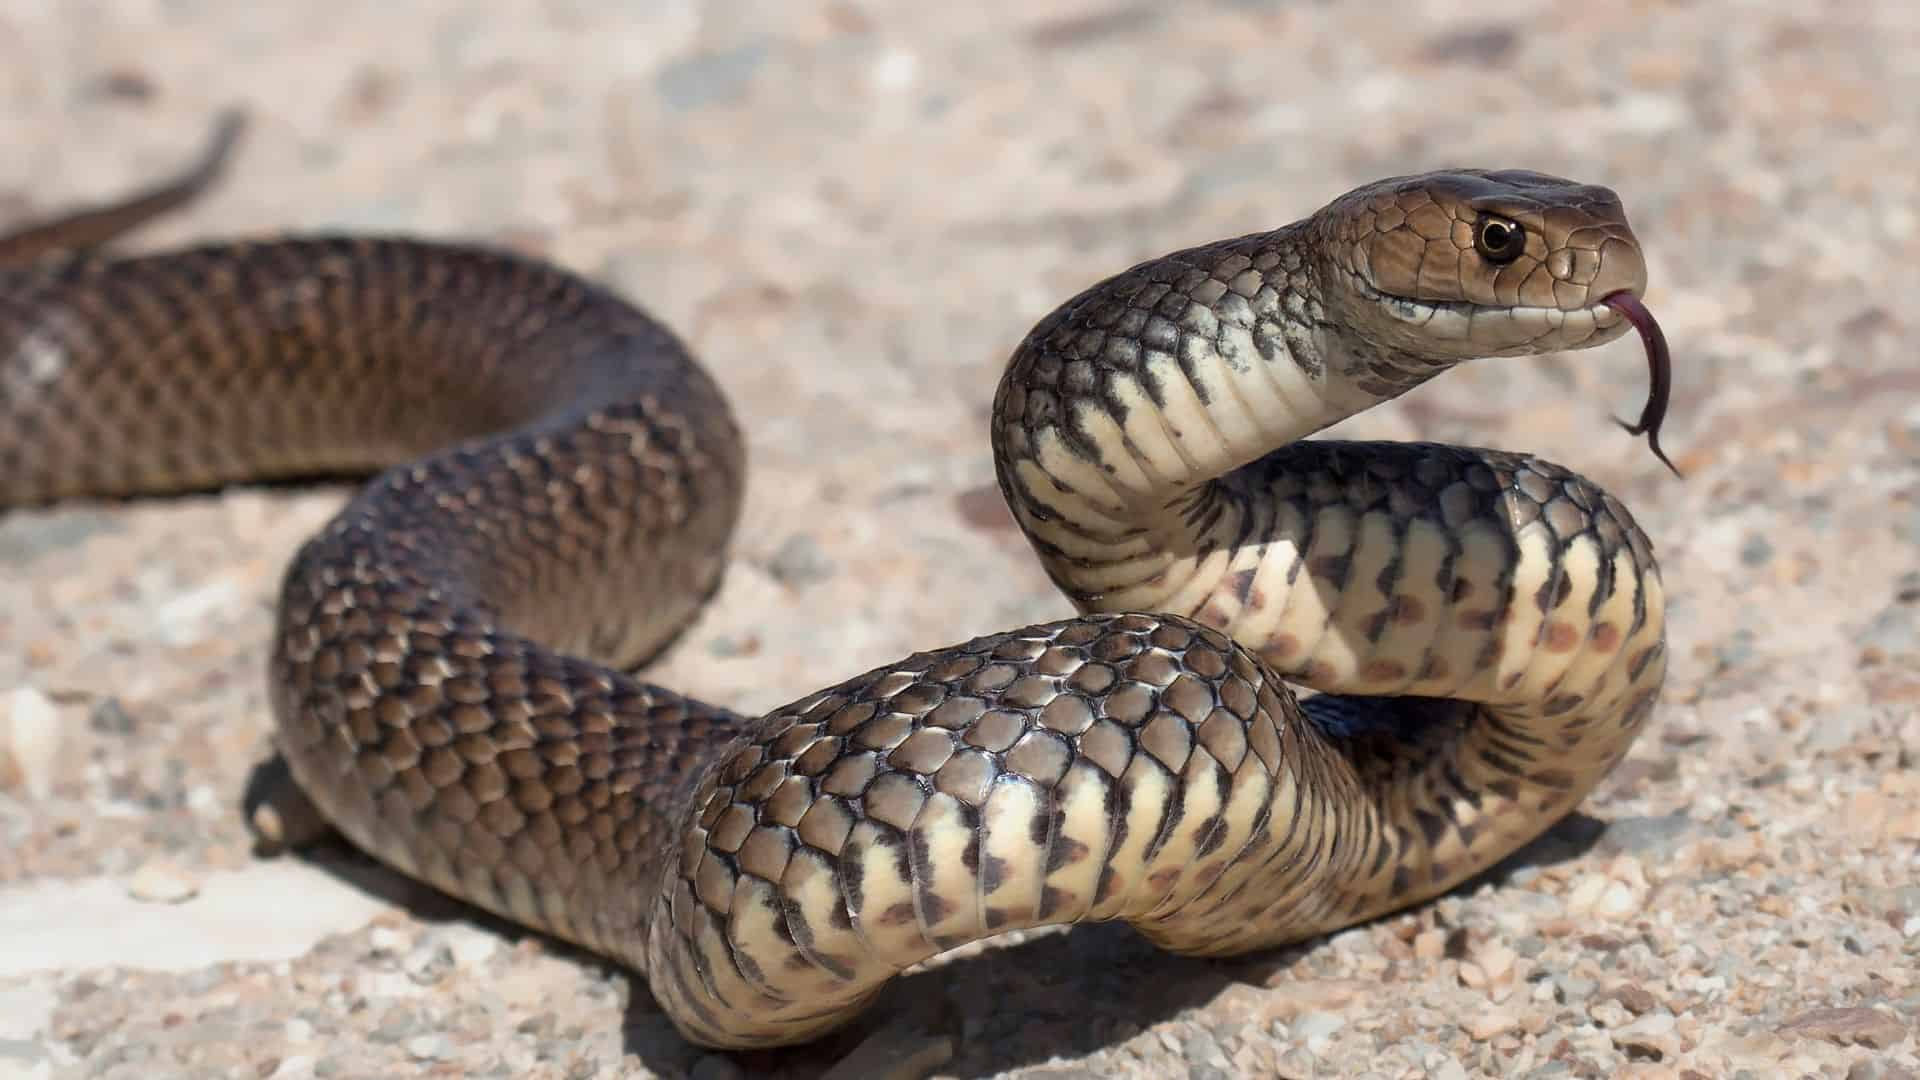 Is it illegal to kill snakes in Australia?